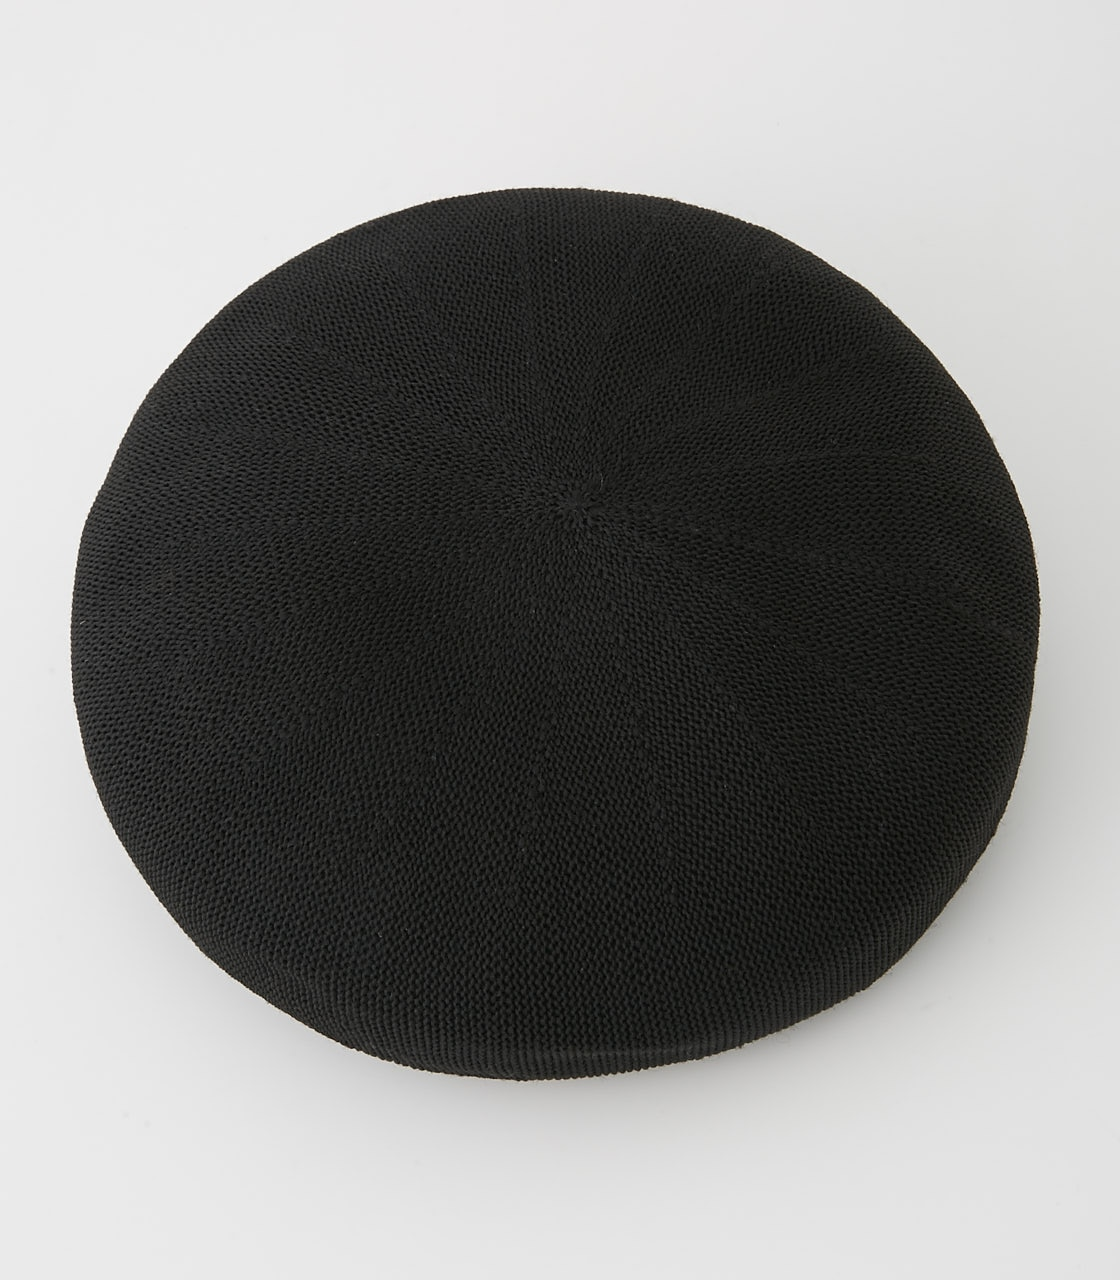 【AZUL BY MOUSSY】THERMO BERET 詳細画像 BLK 2